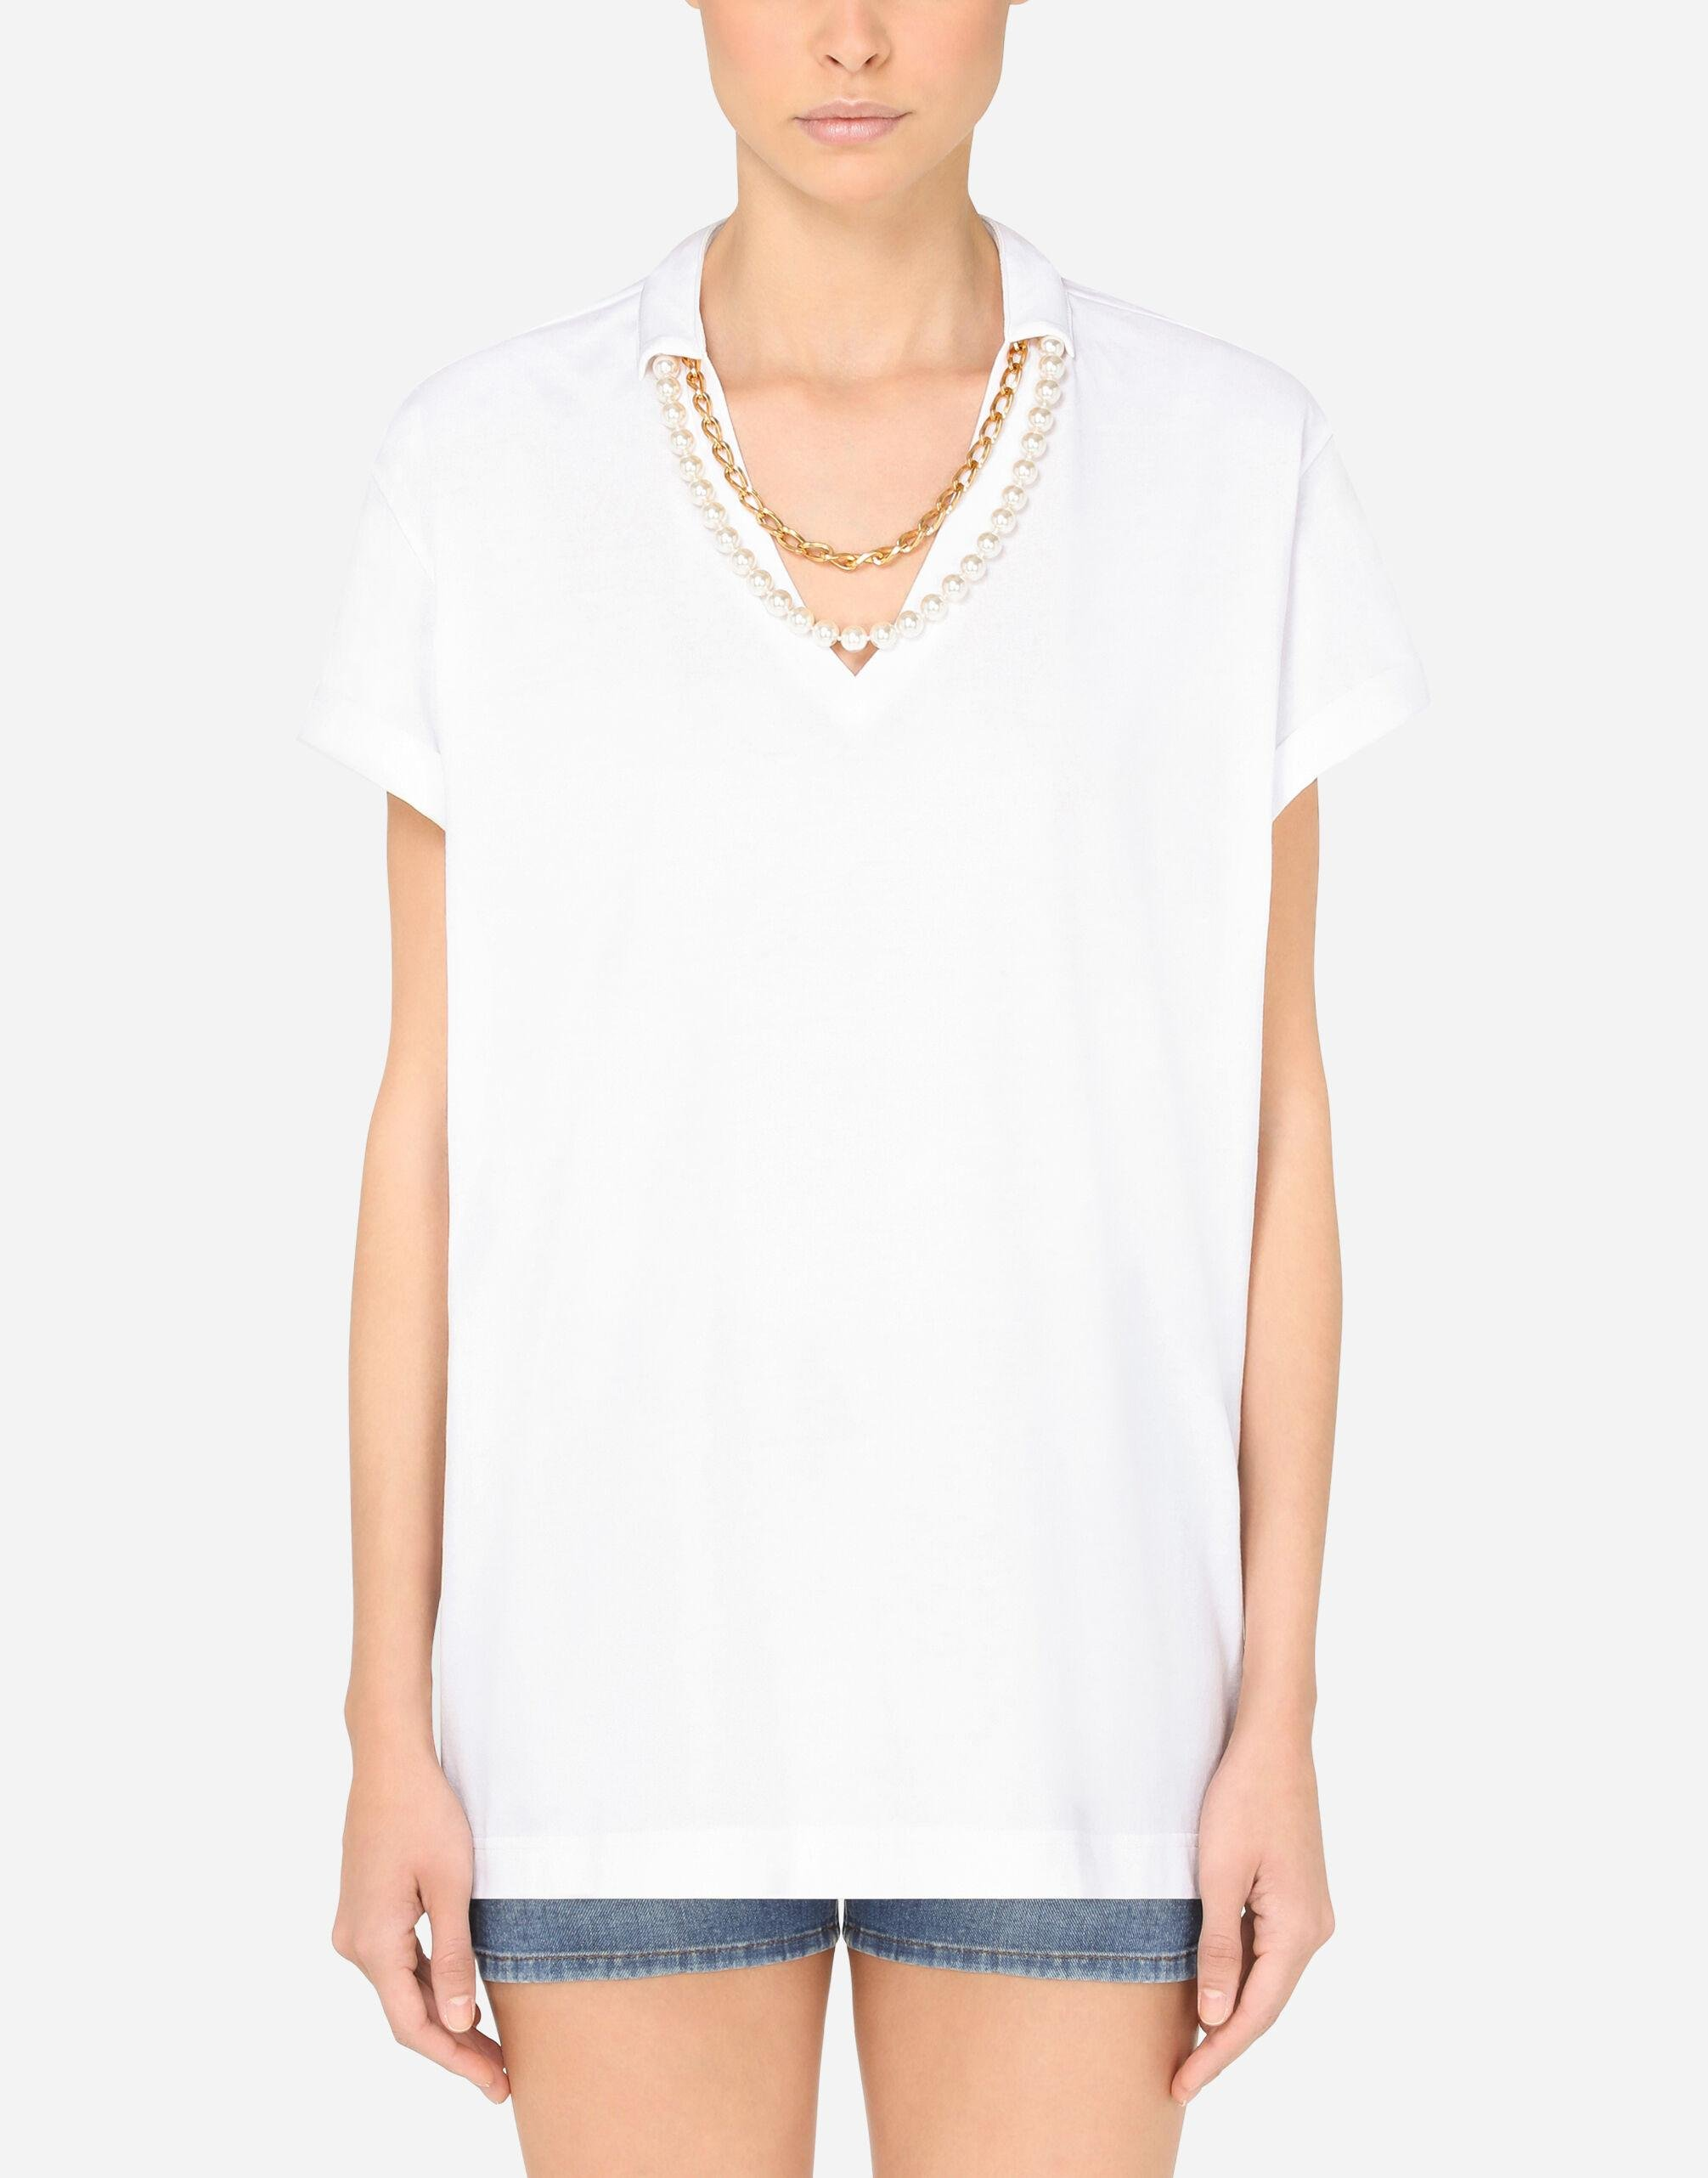 V-neck jersey t-shirt with necklaces